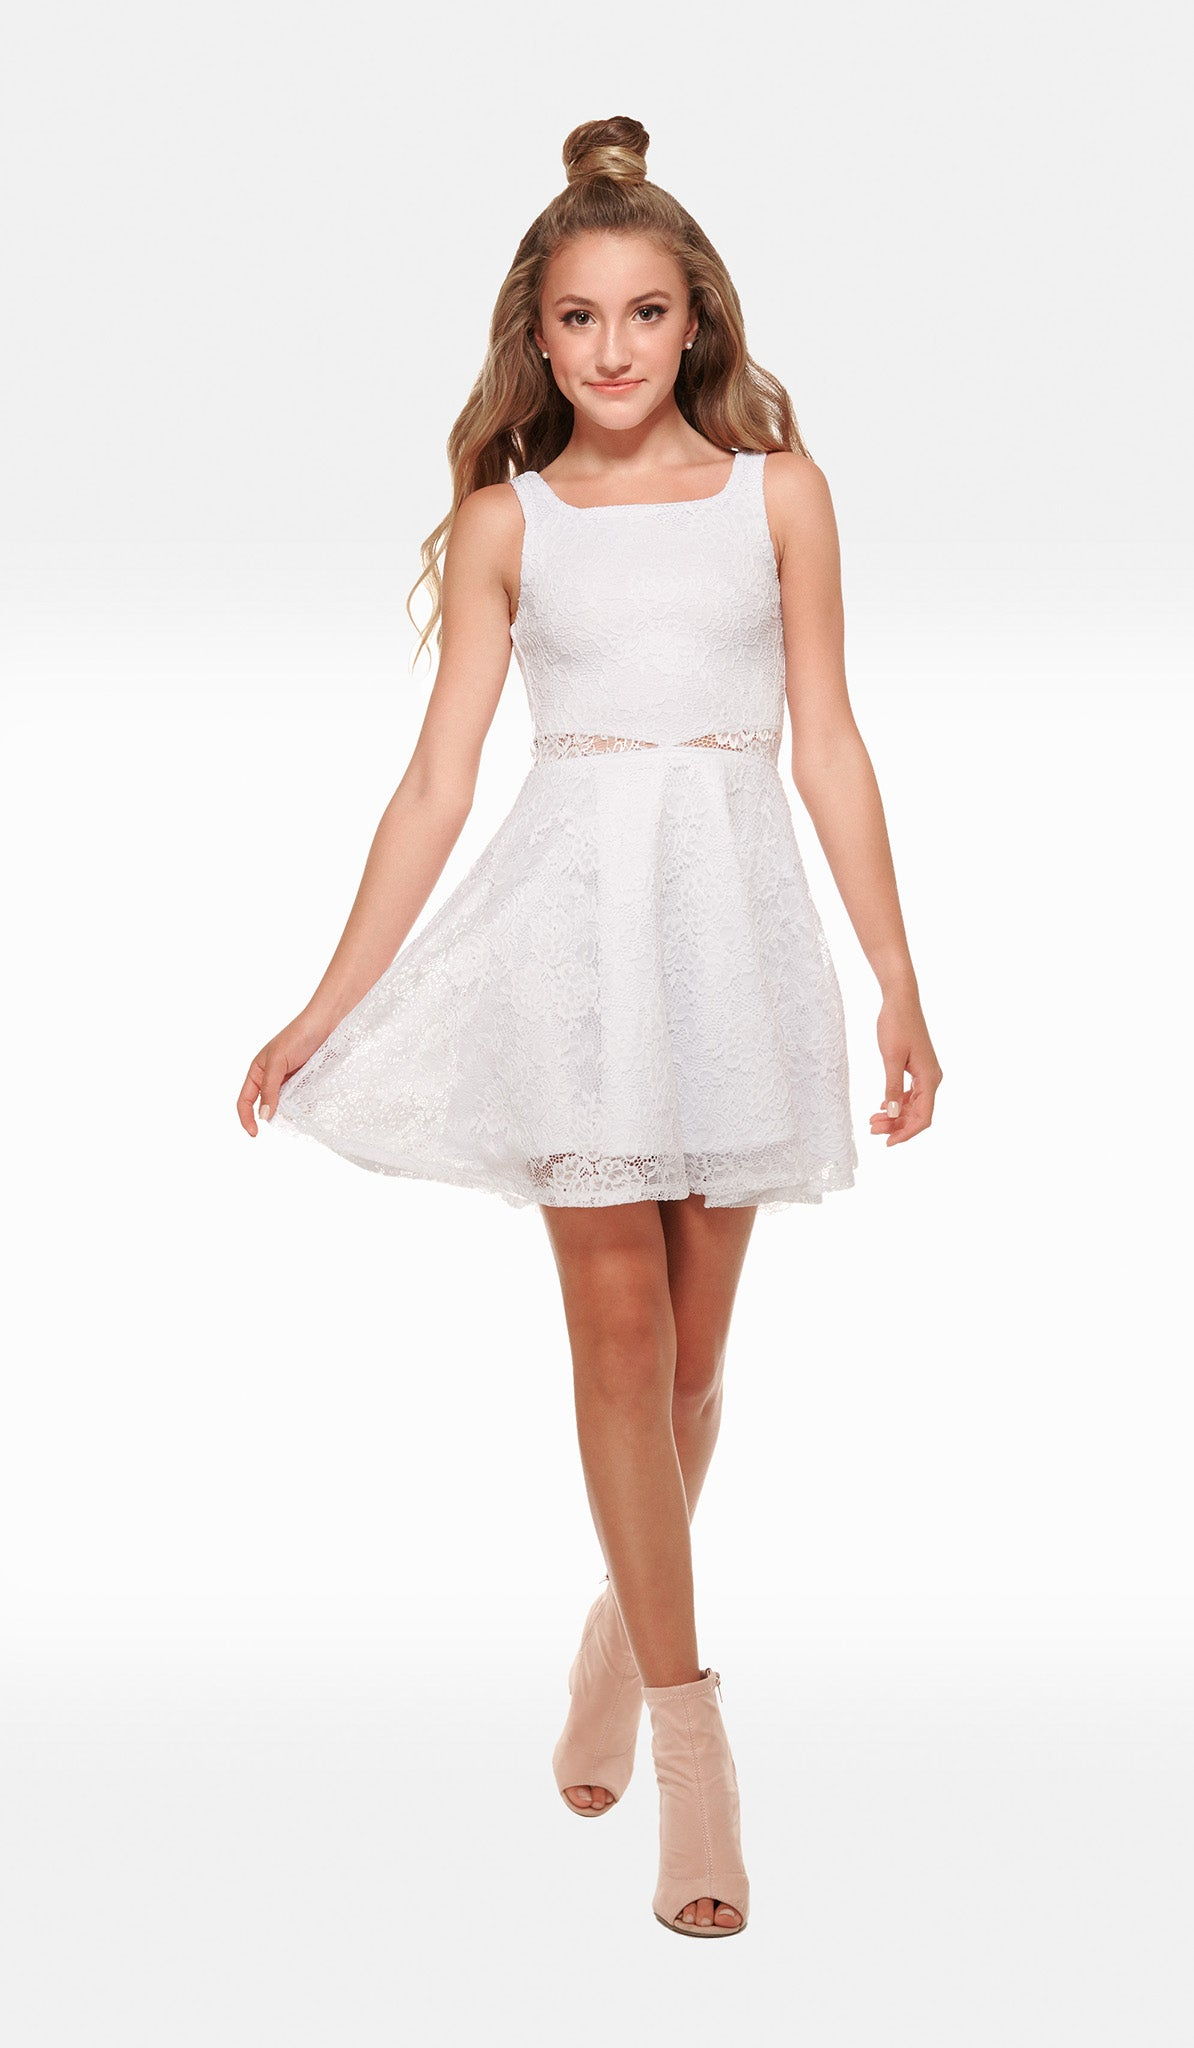 THE RENE DRESS - Sallymiller.com - [variant title] - | Event & Party Dresses for Tween Girls & Juniors | Weddings Dresses, Bat Mitzvah Dresses, Sweet Sixteen Dresses, Graduation Dresses, Birthday Party Dresses, Bar Mitzvah Dresses, Cotillion Dresses